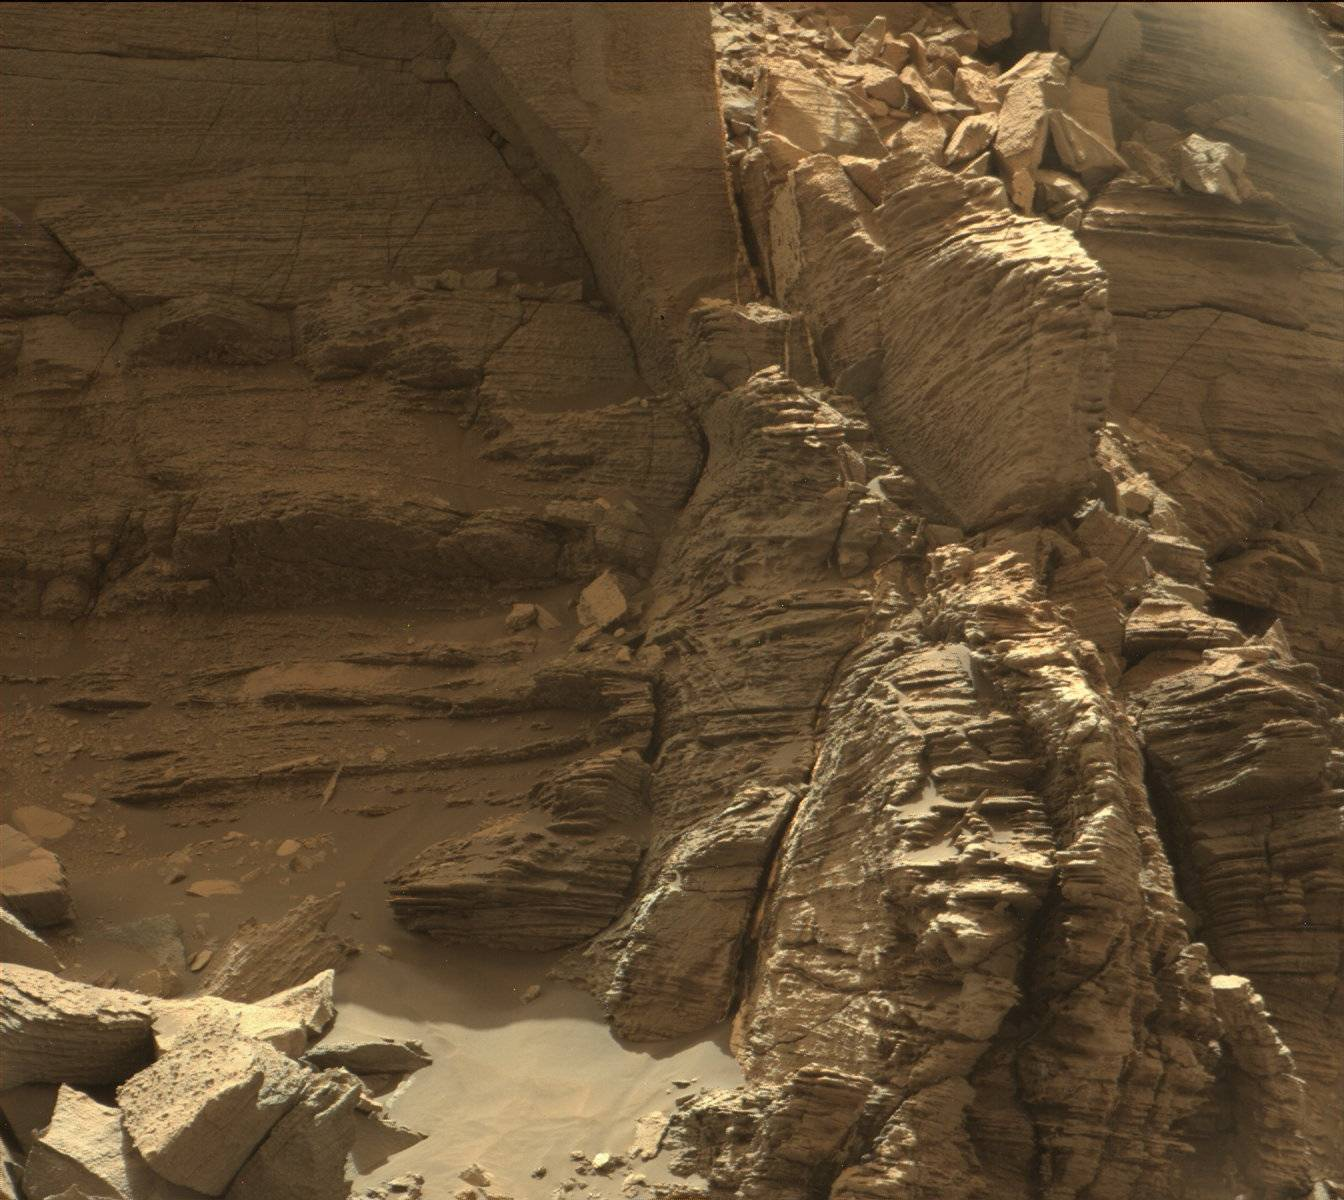 16-09-08-mars-curiosity-rover-msl-rock-layers-pia21044-full